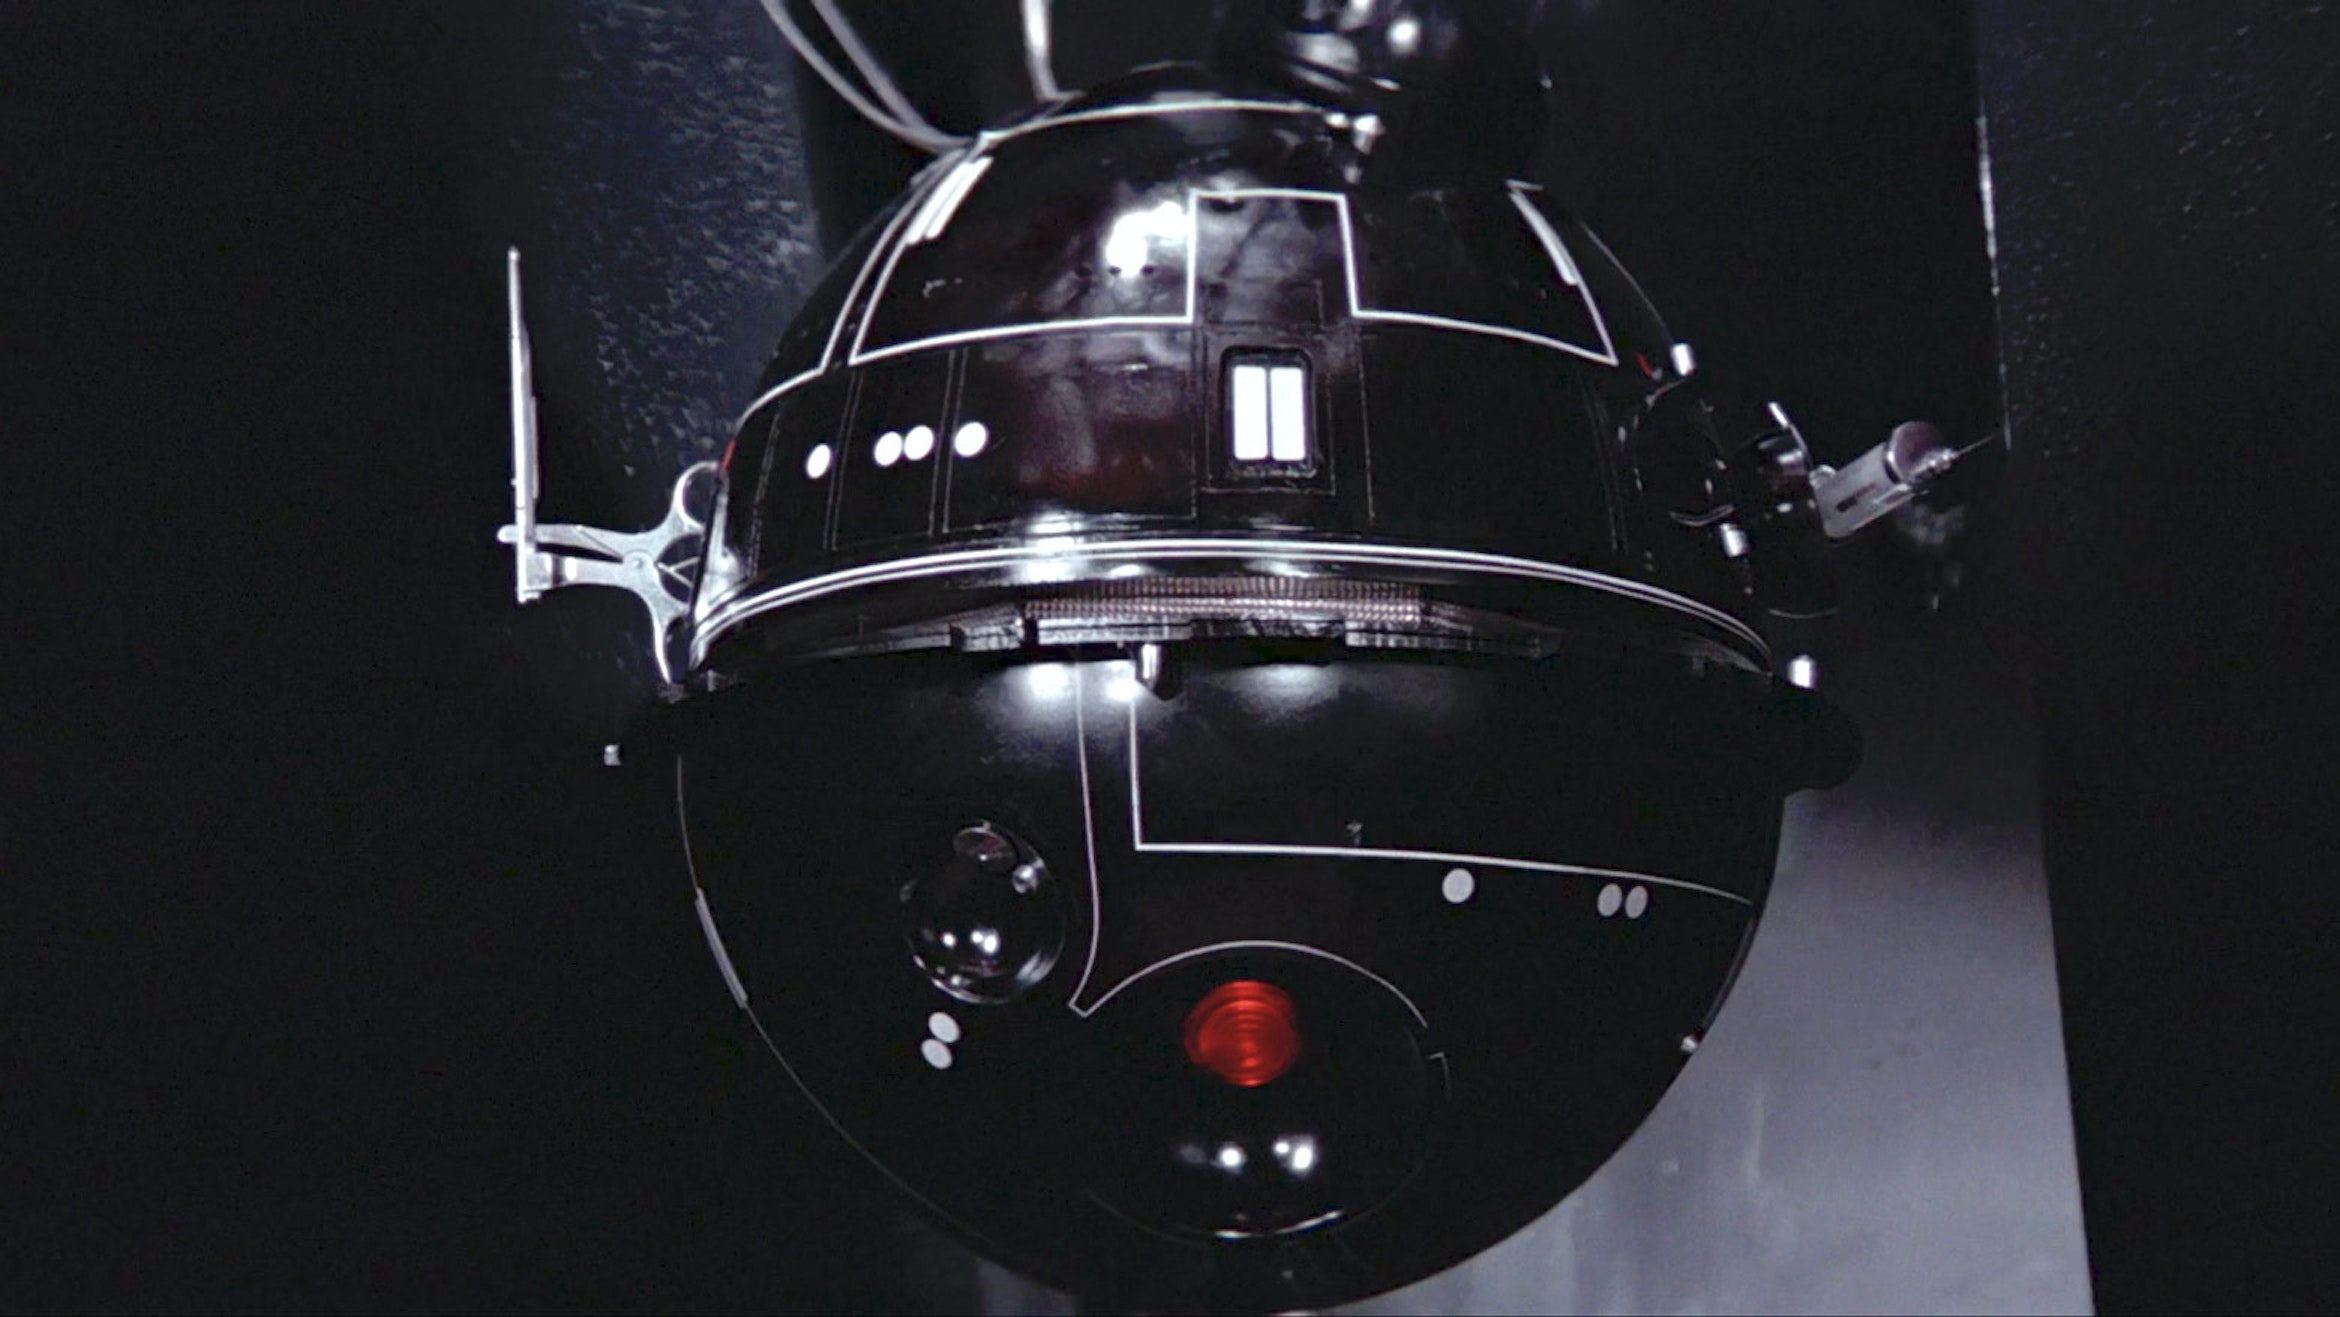 The interrogator droid from 'A New Hope.'